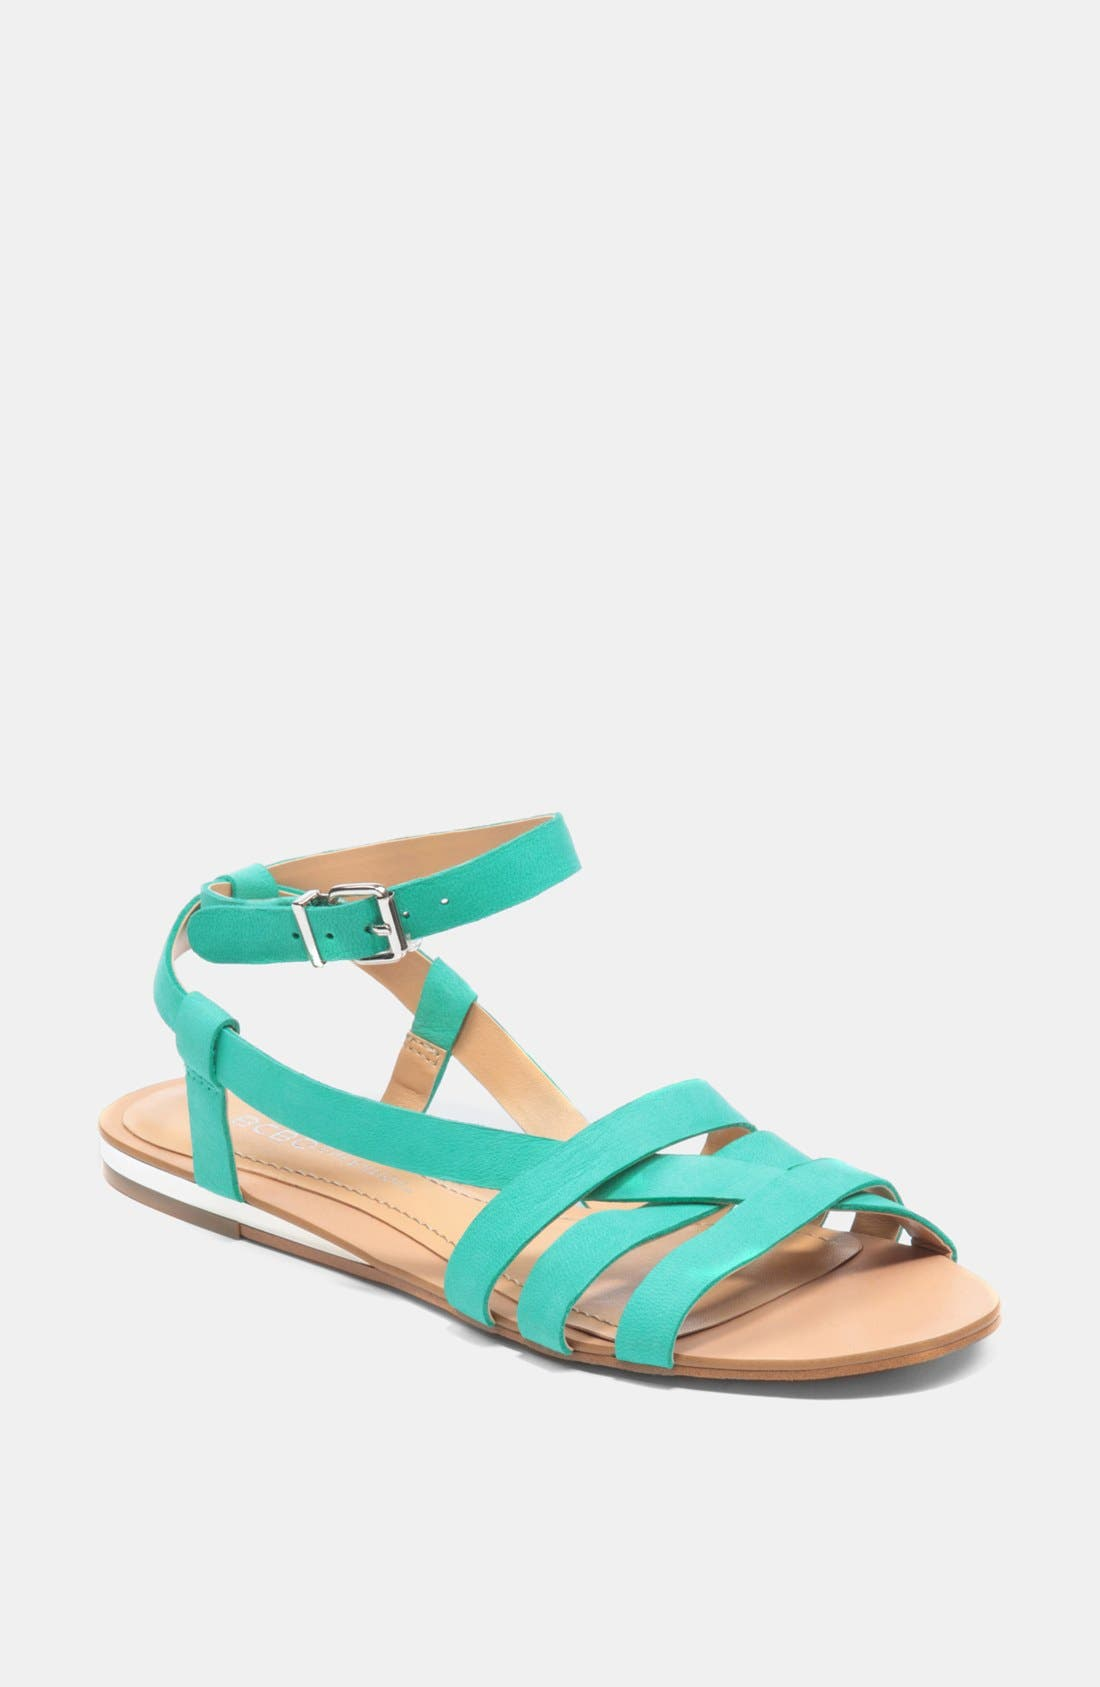 Alternate Image 1 Selected - BCBGeneration 'Rossie' Sandal